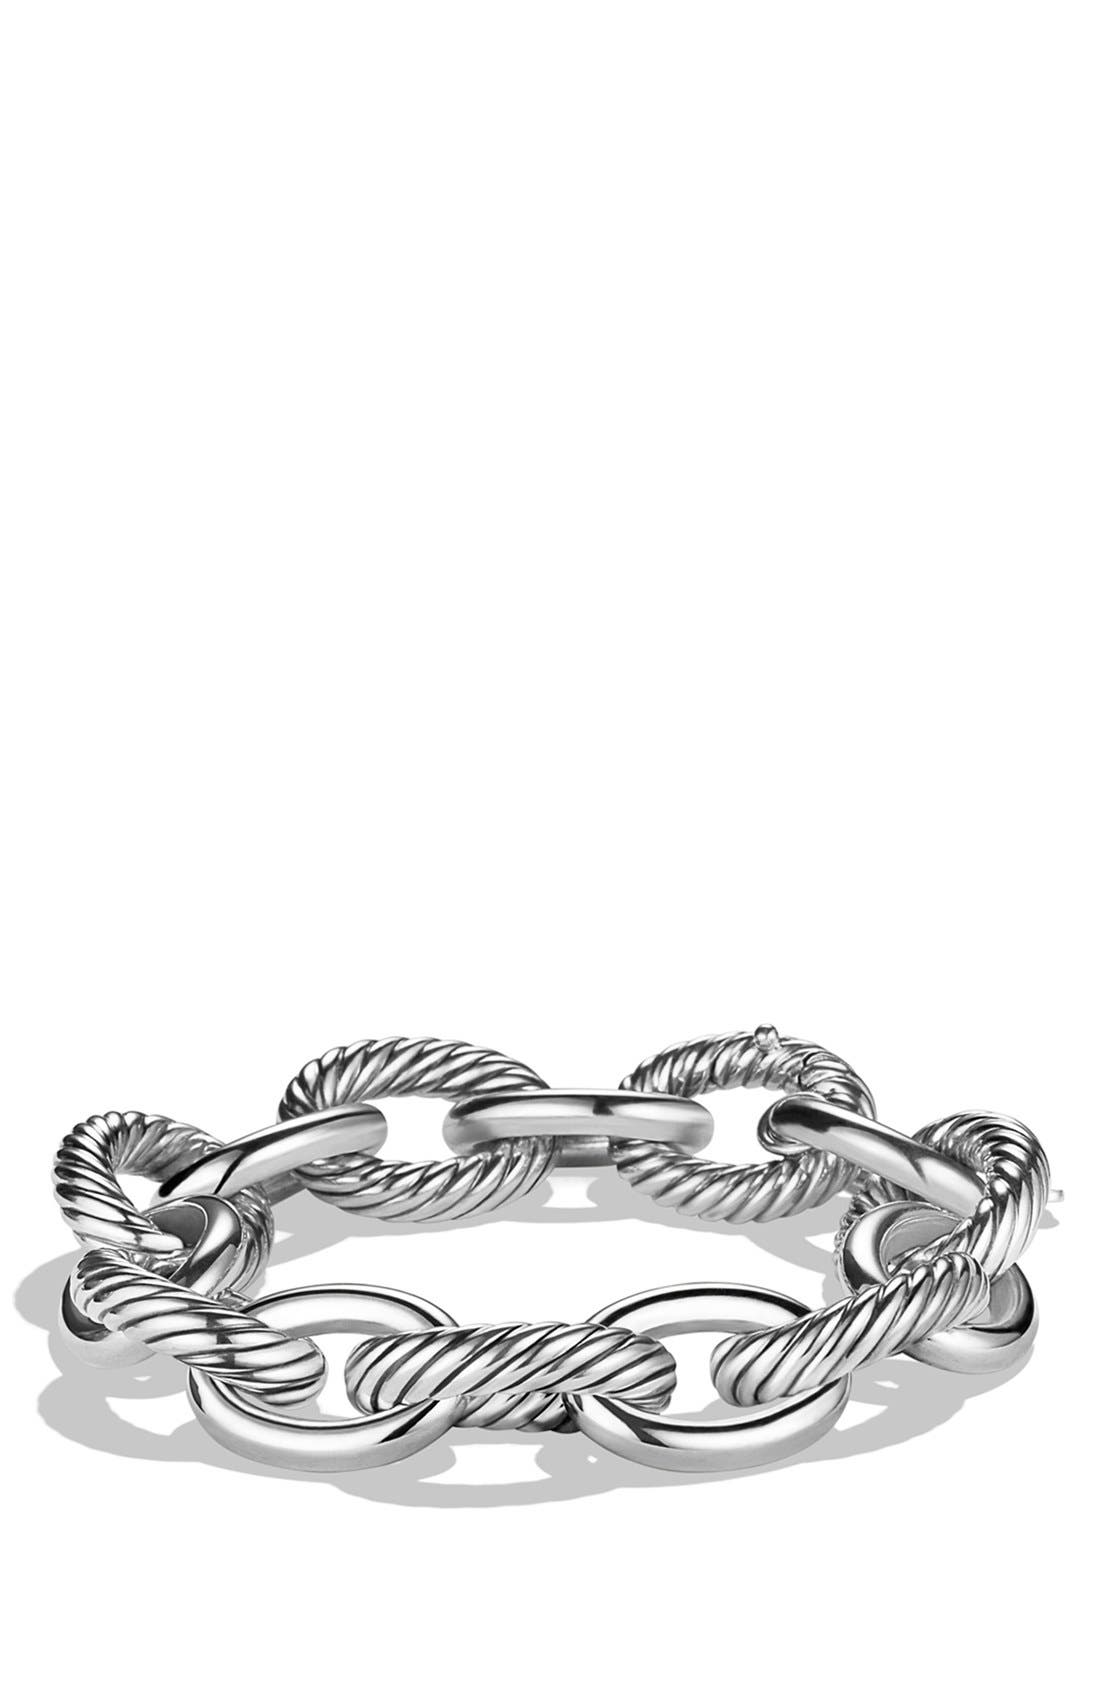 Alternate Image 1 Selected - David Yurman 'Oval' Extra Large Link Bracelet